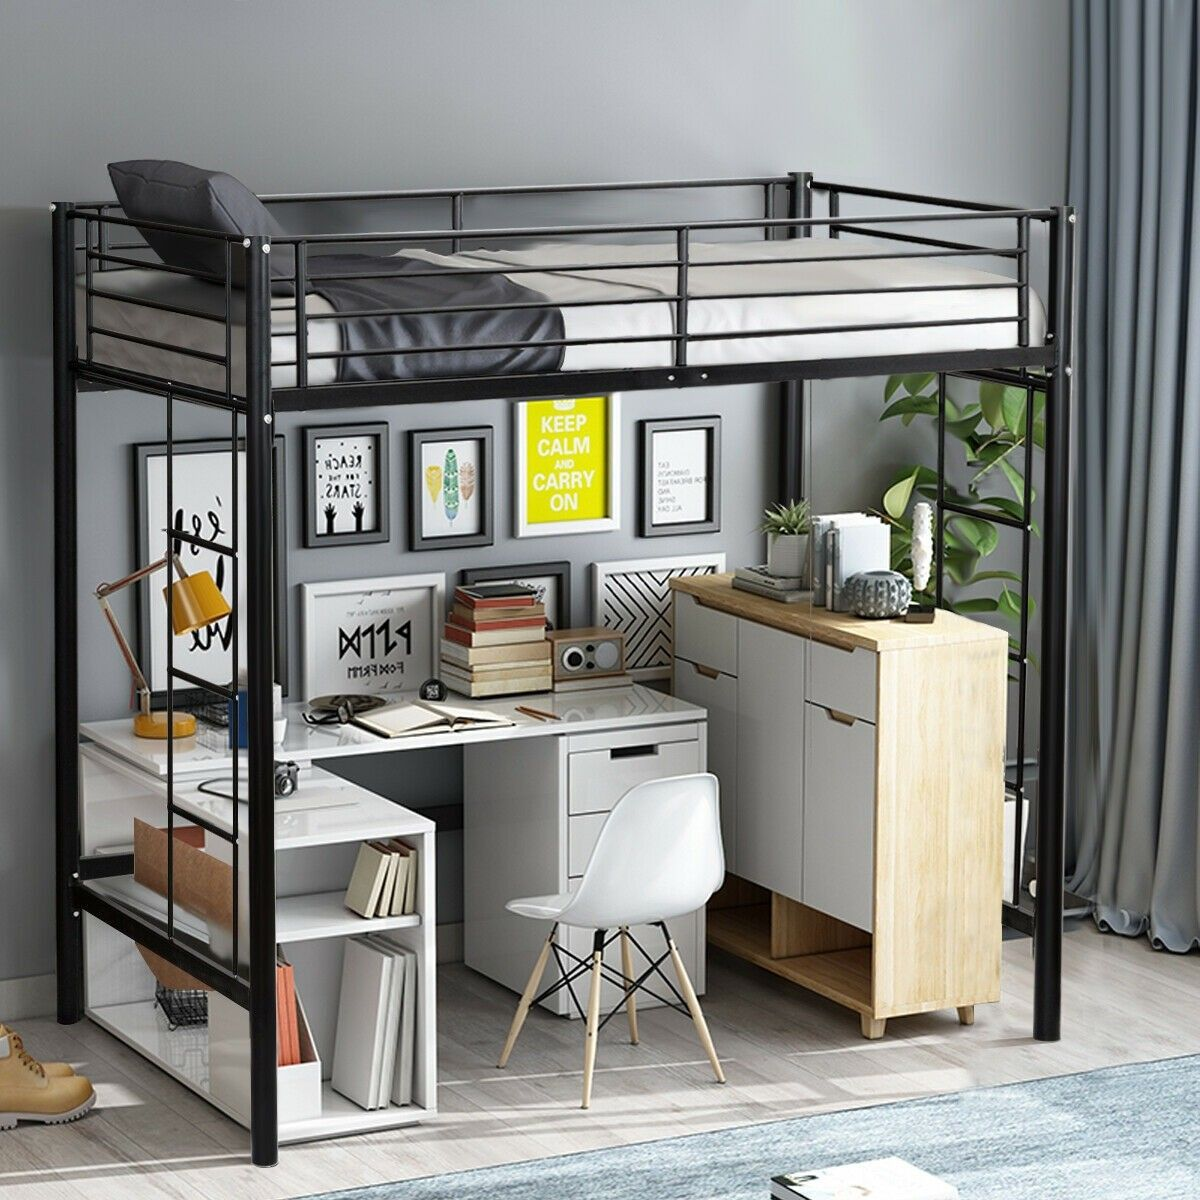 Twin Loft Bed Metal Bunk Ladder Beds For Bedroom Dorm Loft Bed Frame Twin Loft Bed Loft Bed